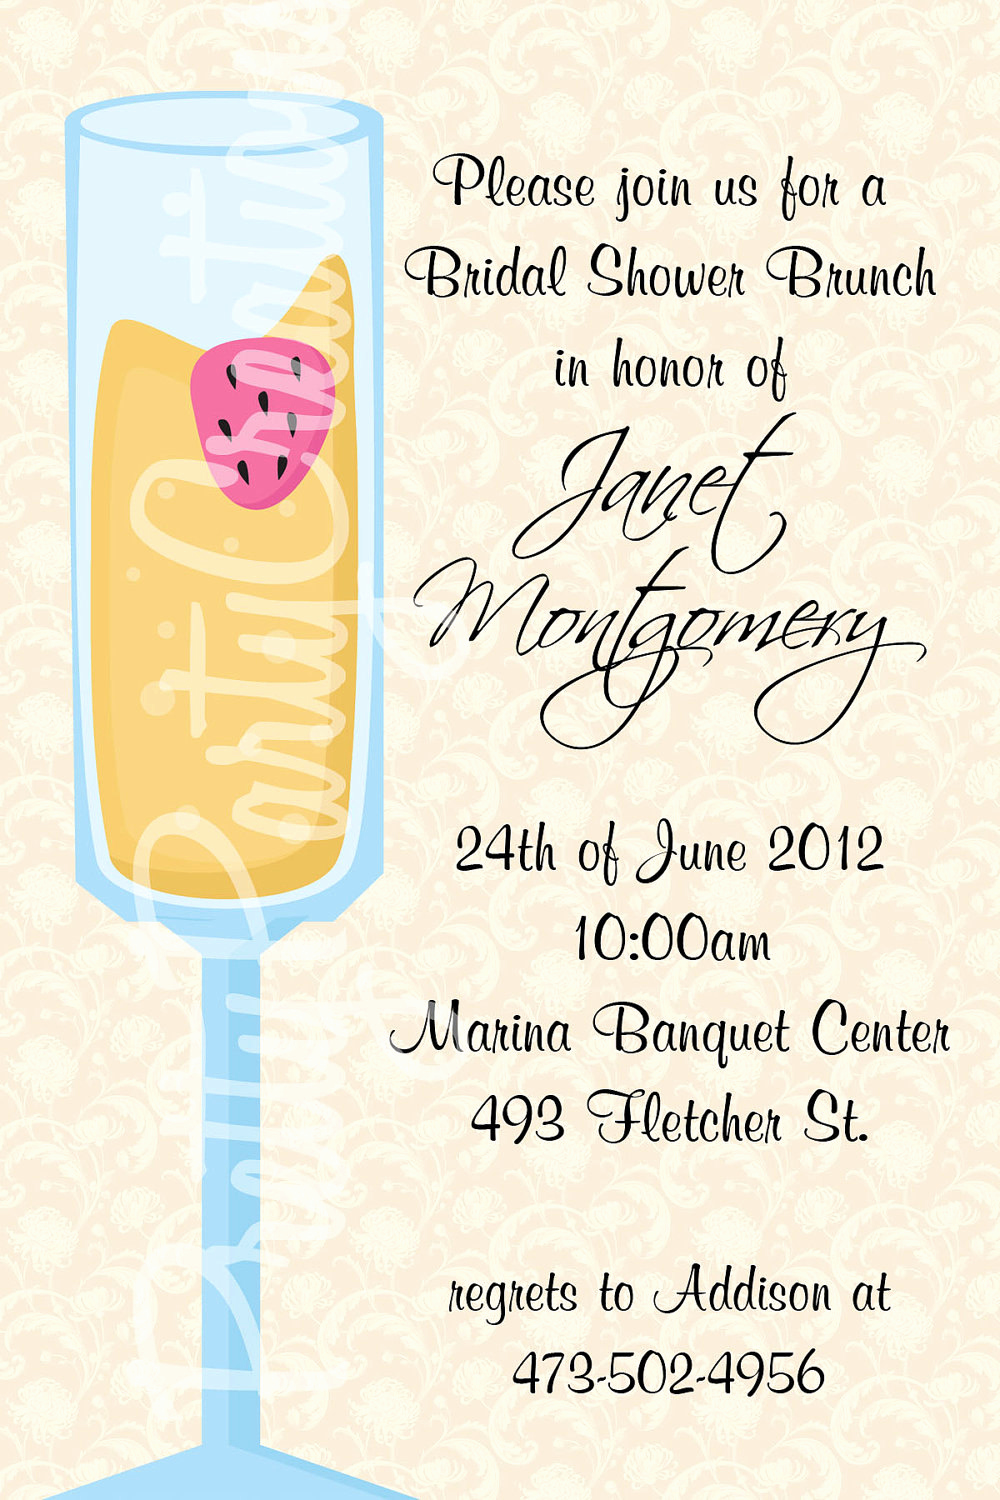 Bridal Shower Brunch Invitation Wording Inspirational Mimosa Bridal Shower Brunch Invitation by Prettypartycreations